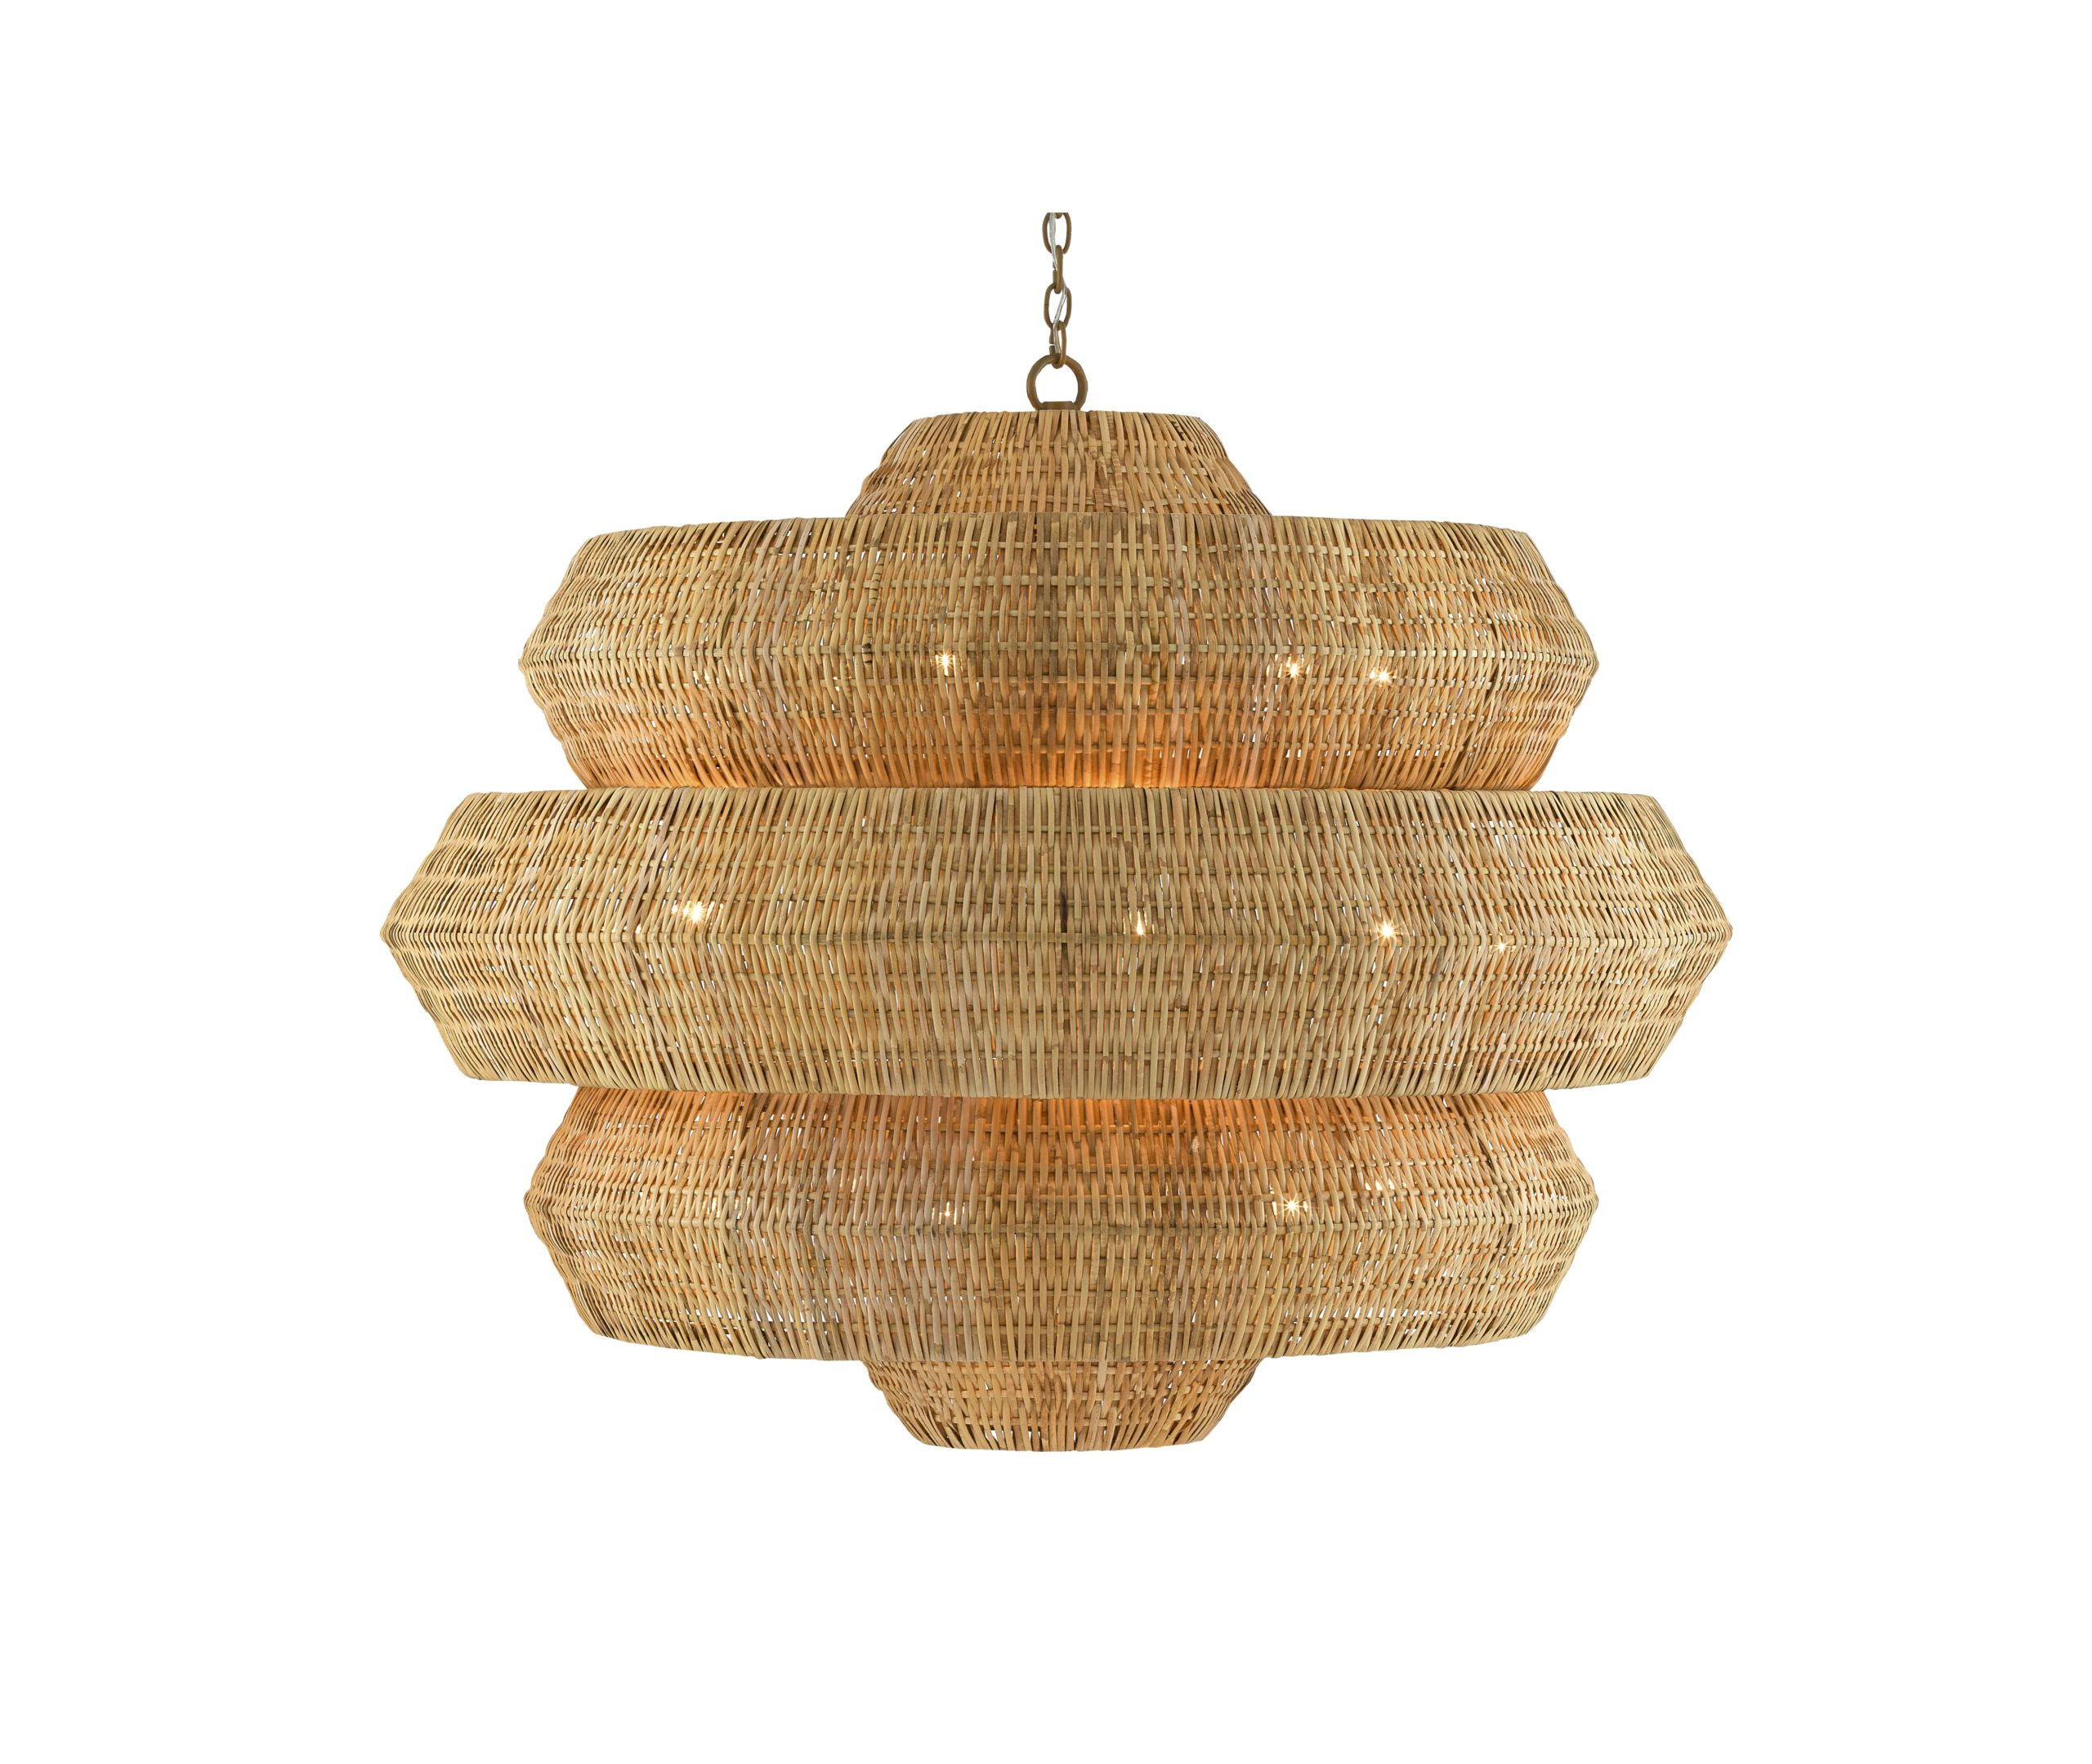 NYDC_WNWN_currey_and_co_products_antibes_grande_chandelier_9000-0496_